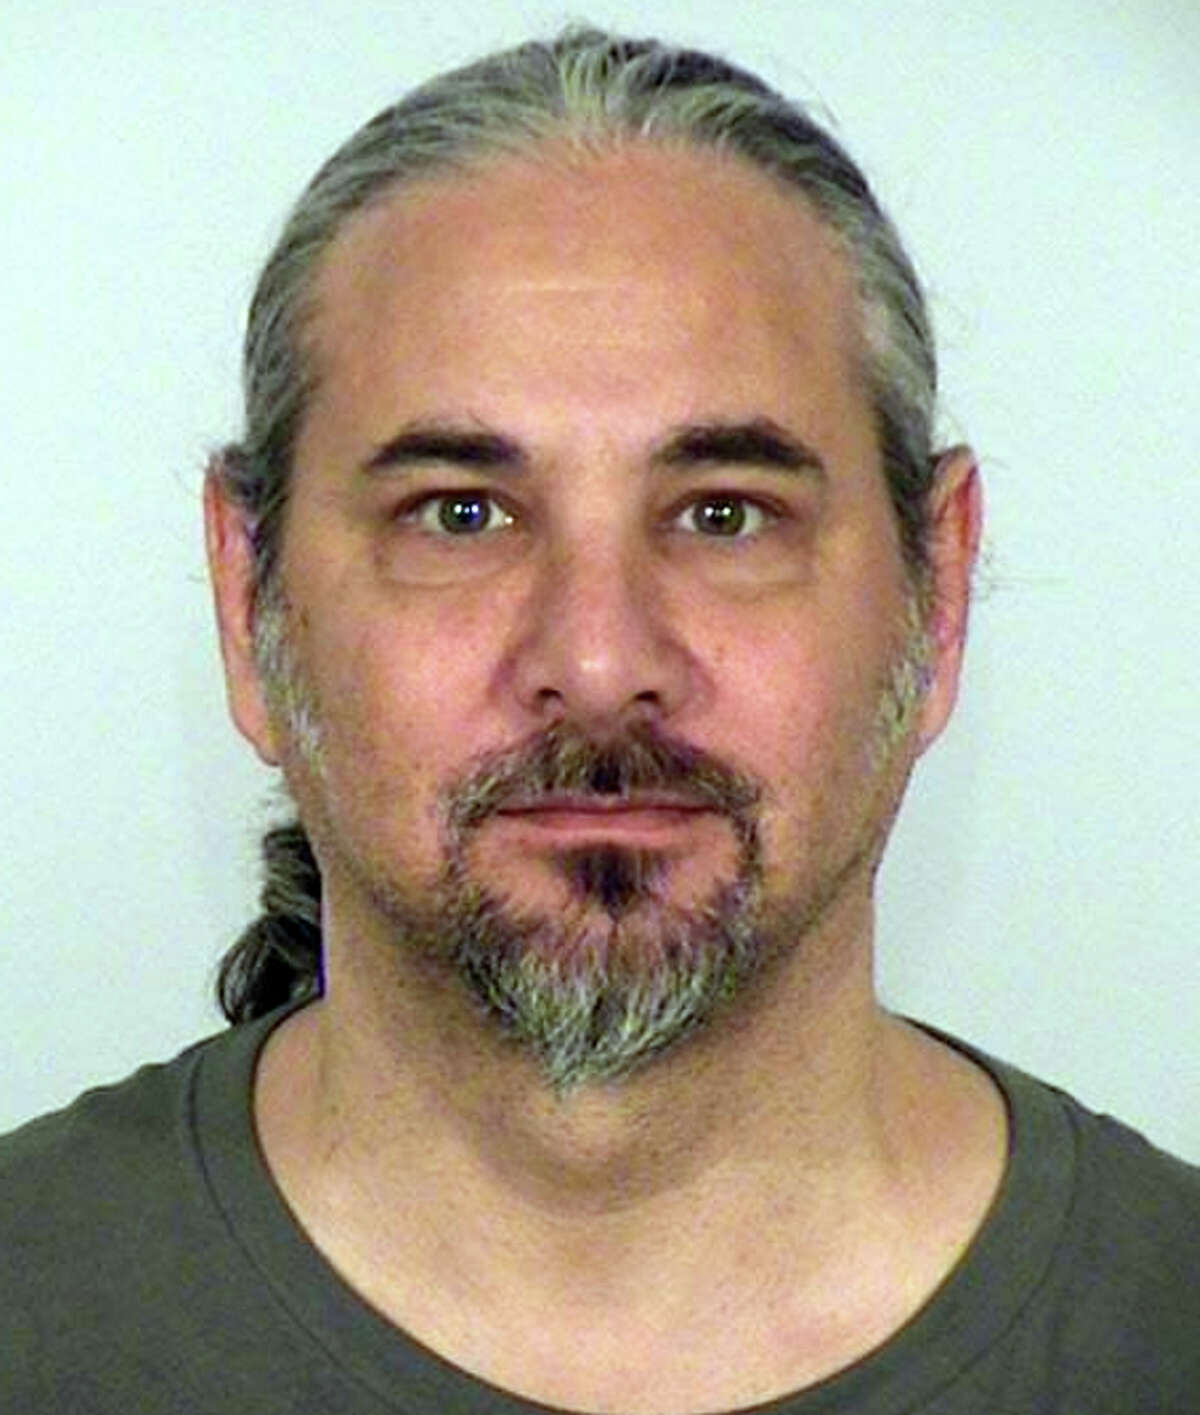 Registered sex offender Scott Cohen, pictured in a King County Sheriff's Office photo.